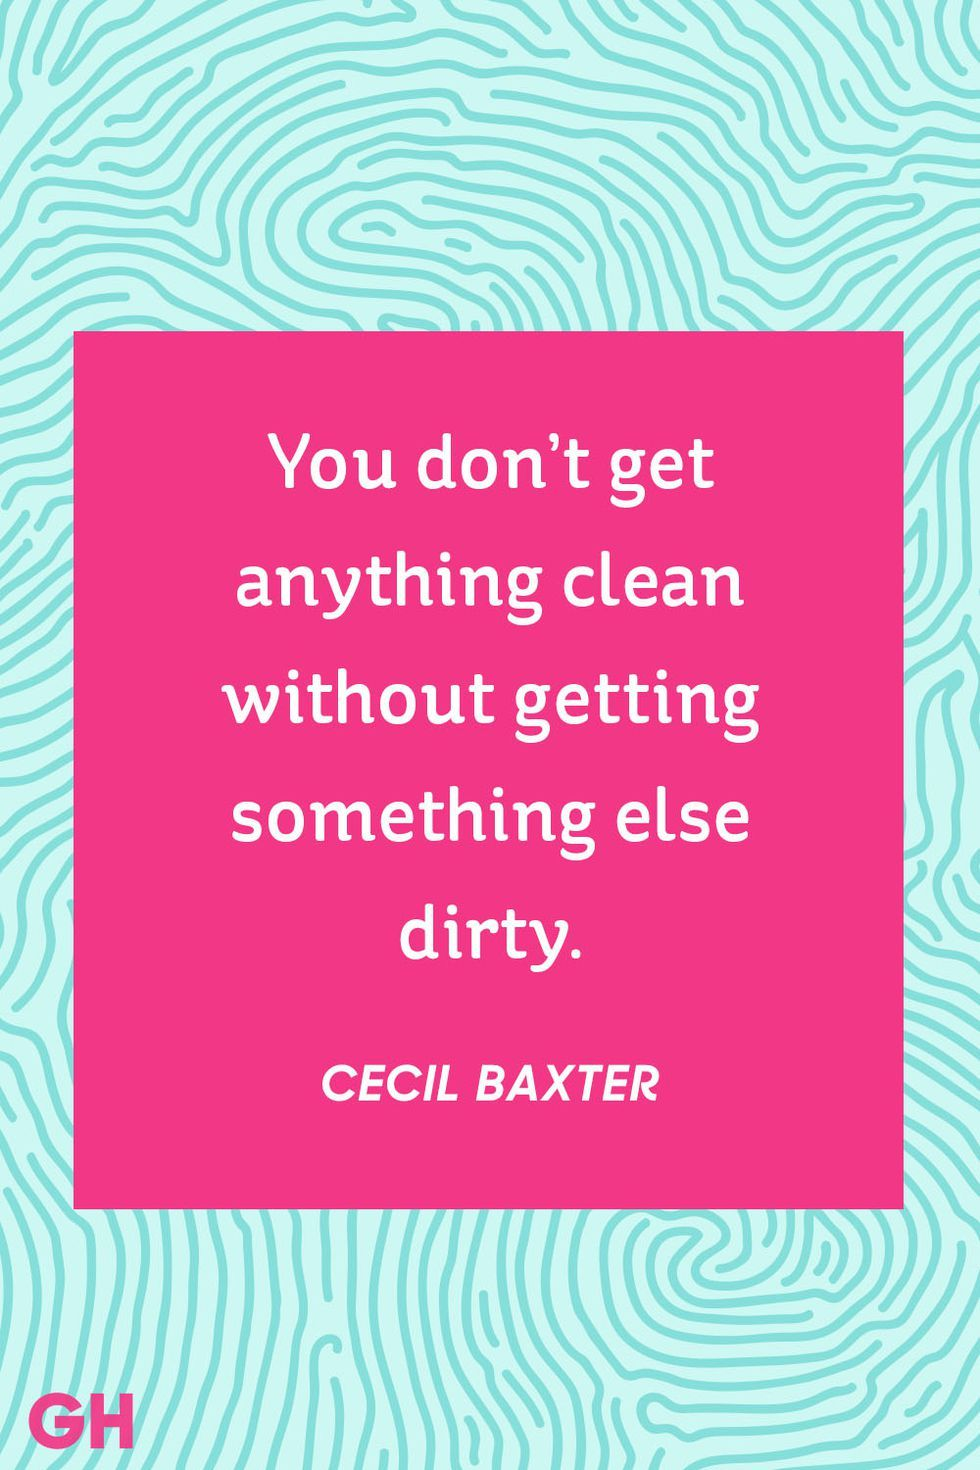 15 Hilarious Cleaning Quotes That Sum Up Exactly How You Feel About Cleaning Cleaning Quotes Funny Cleaning Quotes Clean House Quotes